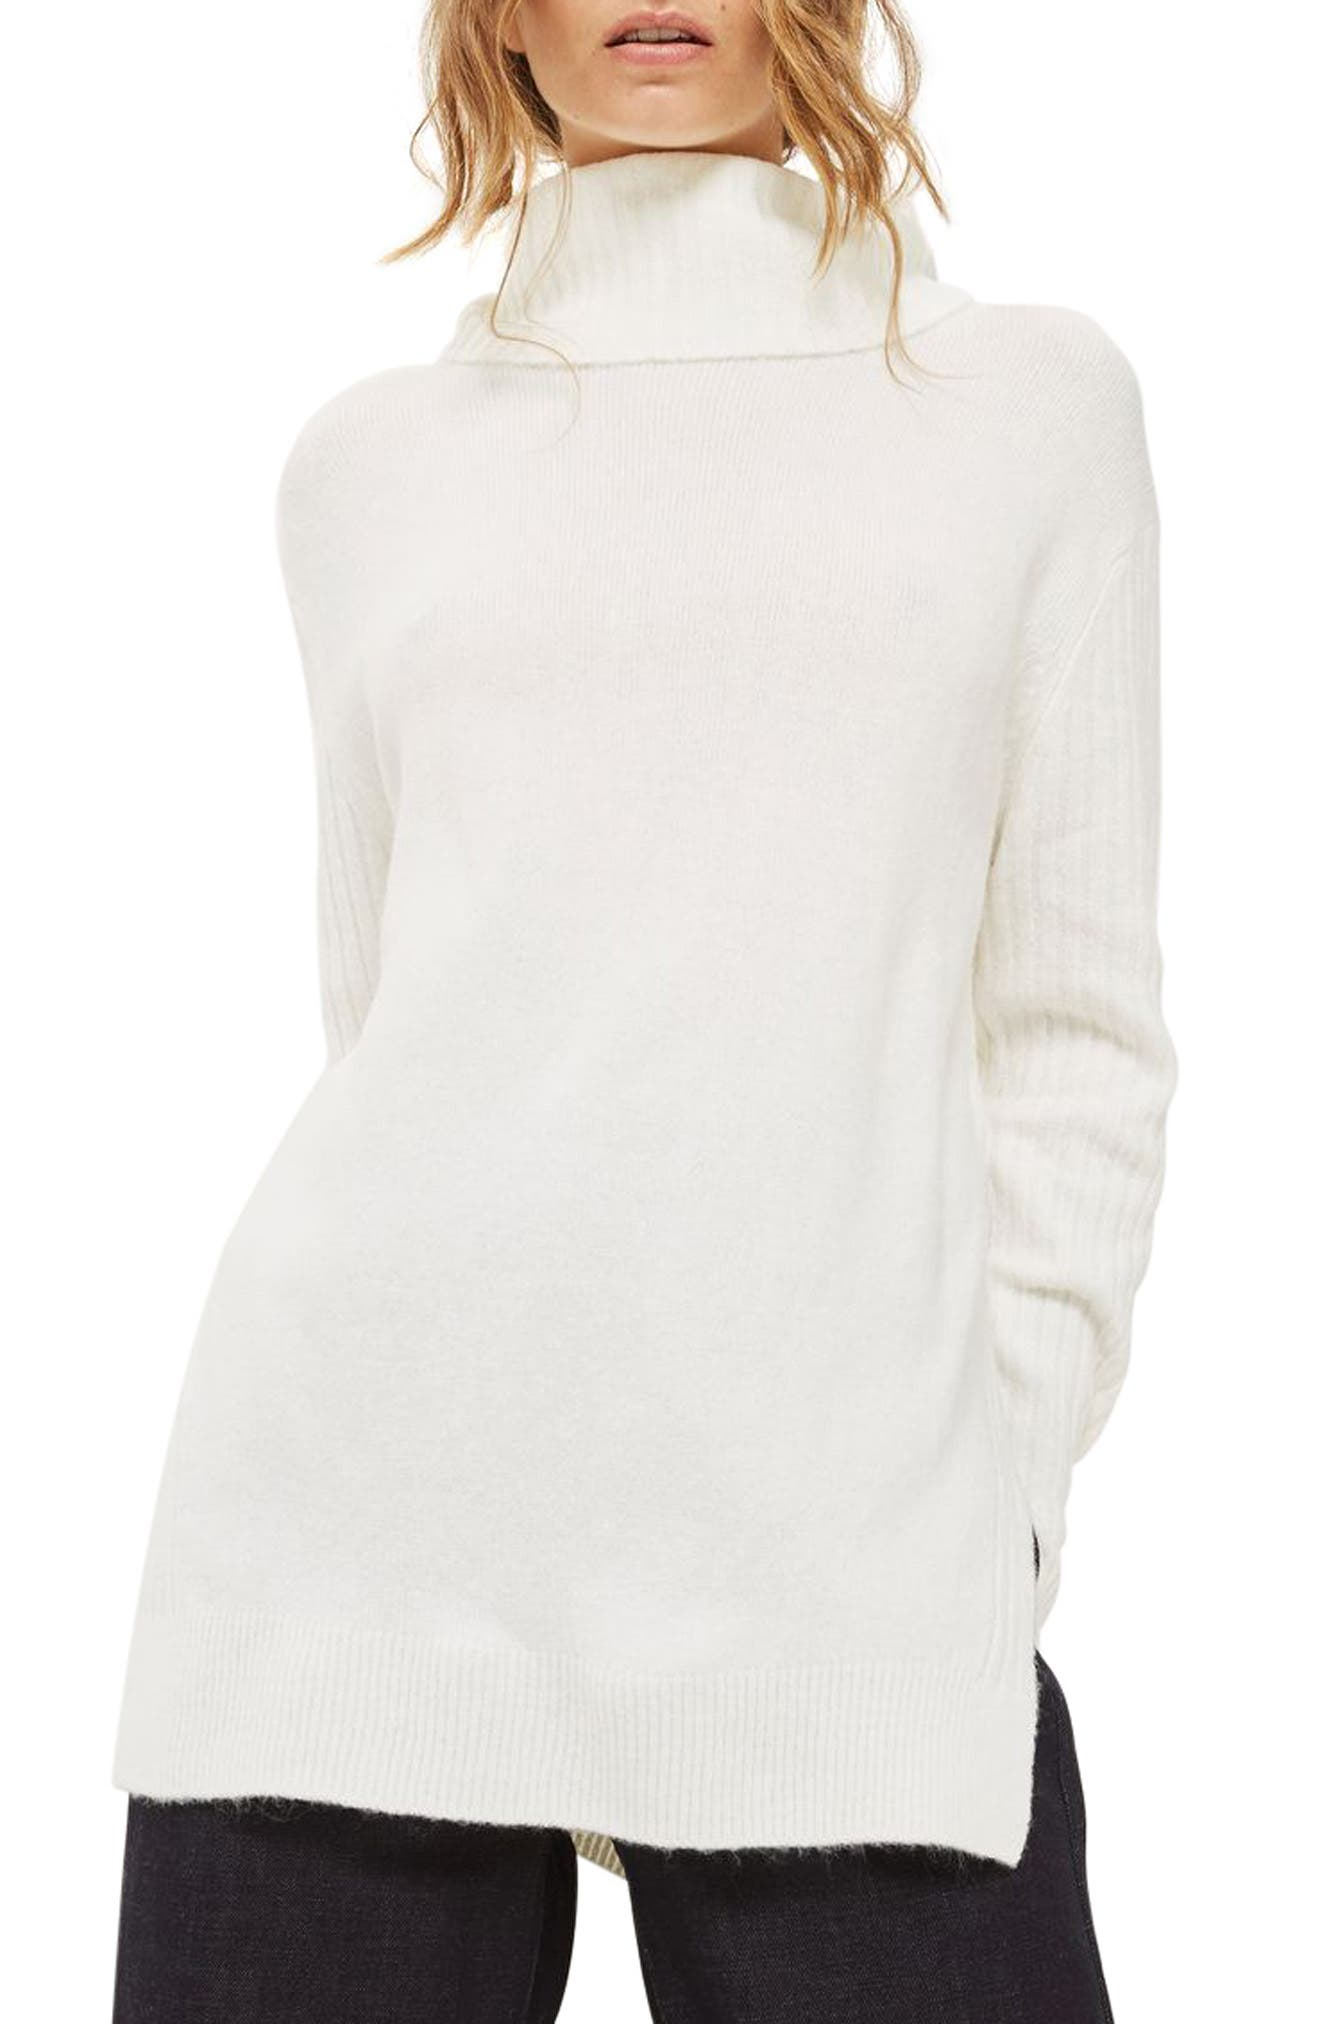 Main Image - Topshop Oversize Turtleneck Sweater